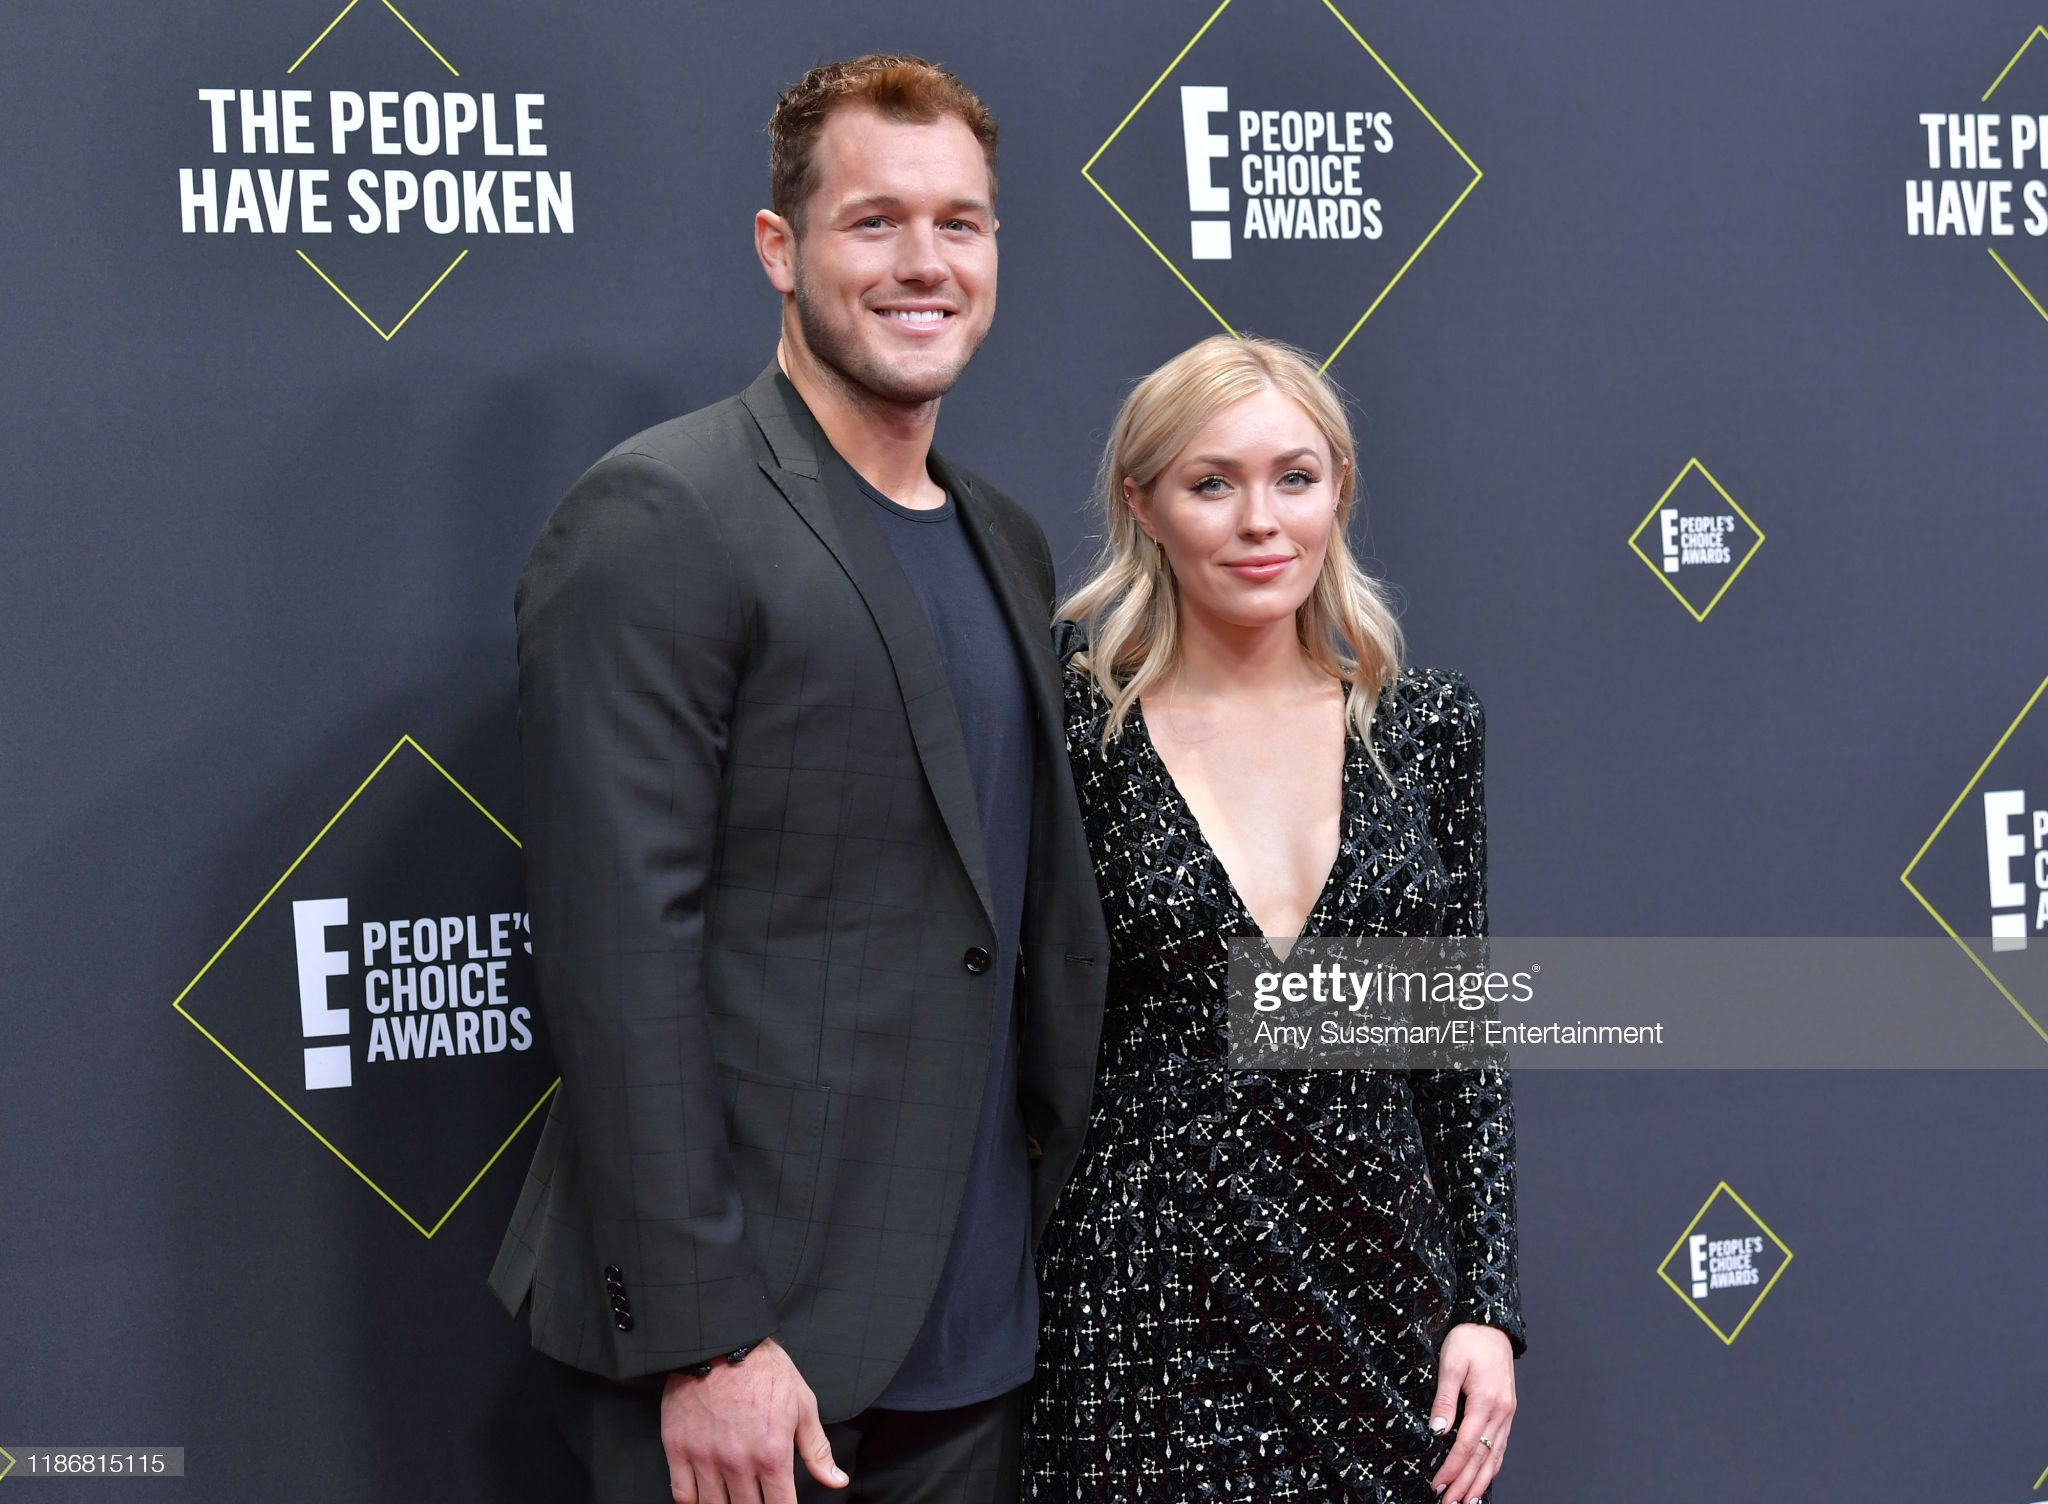 Colton Underwood & Cassie Randolph - Bachelor 23 - Discussion - Page 14 Pictured-colton-underwood-and-cassie-randolph-arrive-to-the-2019-e-picture-id1186815115?s=2048x2048